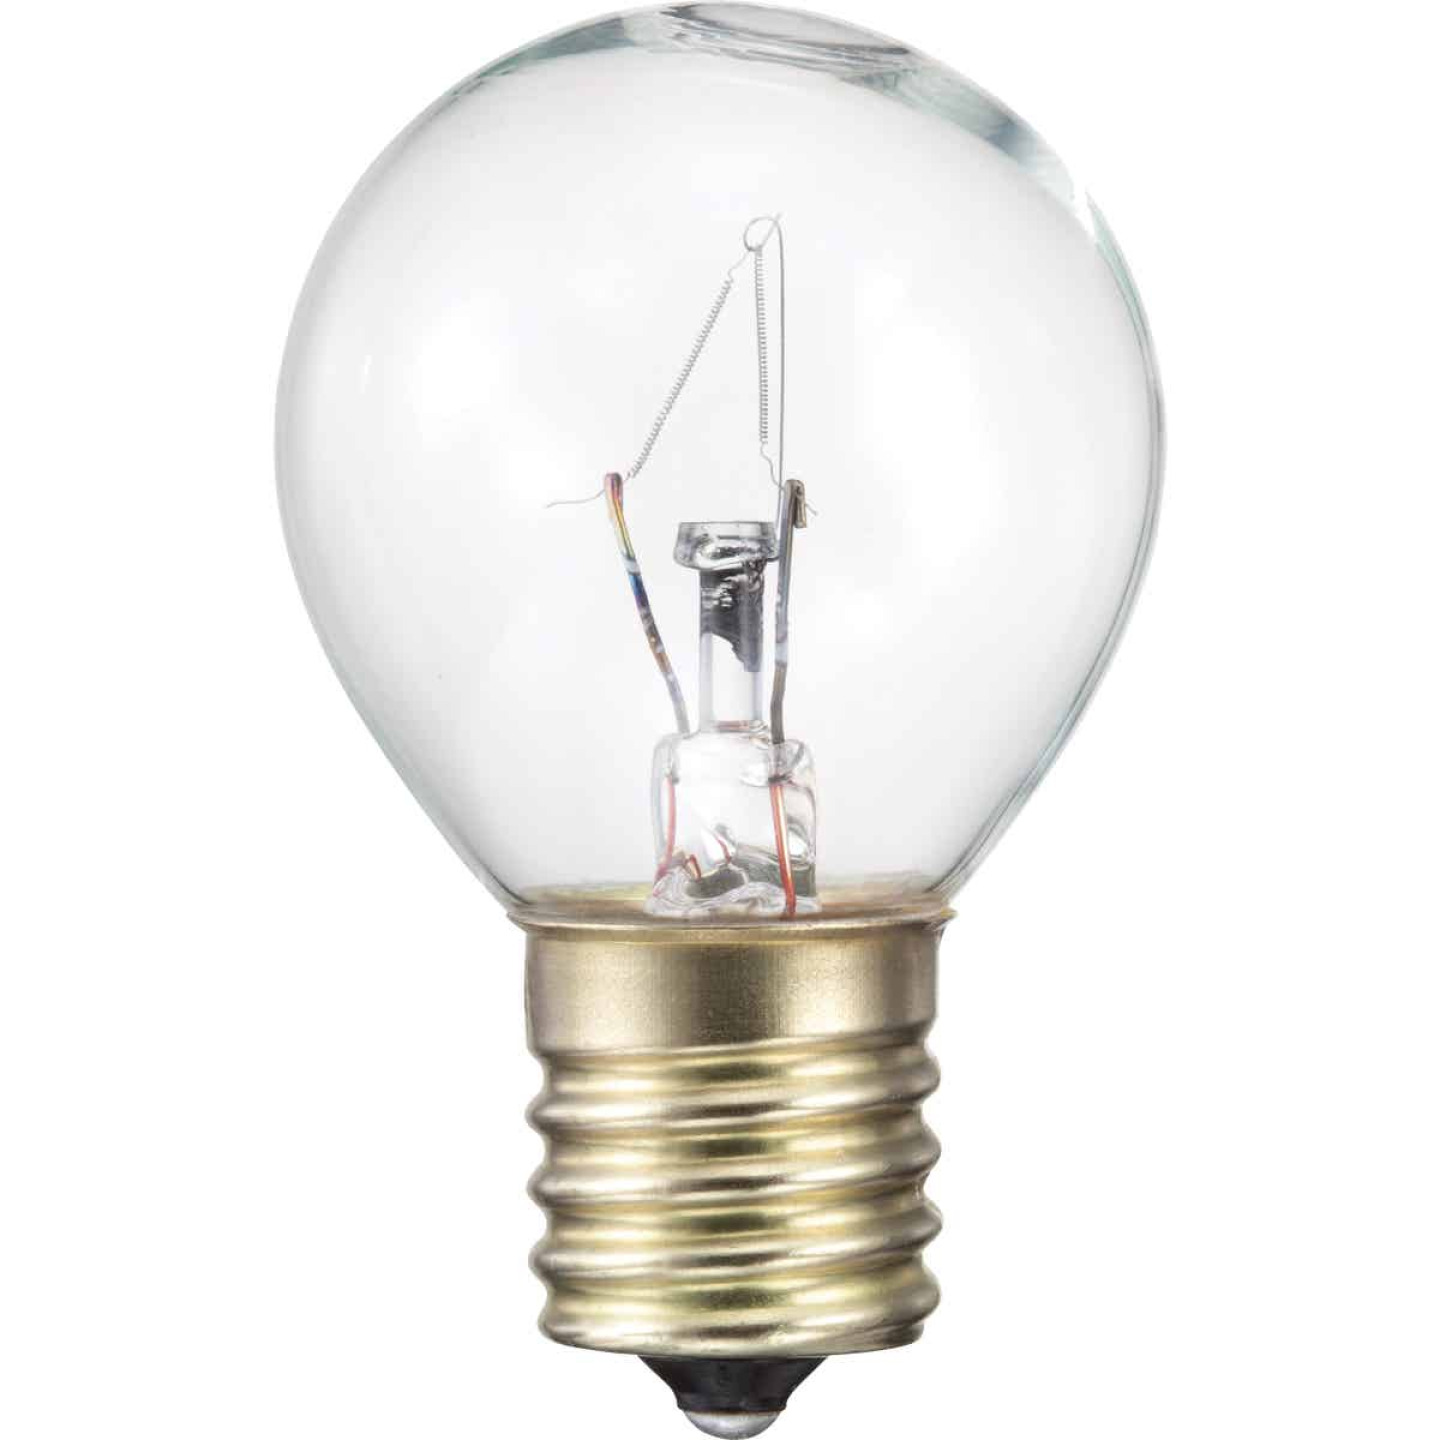 Philips 25W Clear Intermediate S11 Incandescent Appliance Light Bulb Image 1